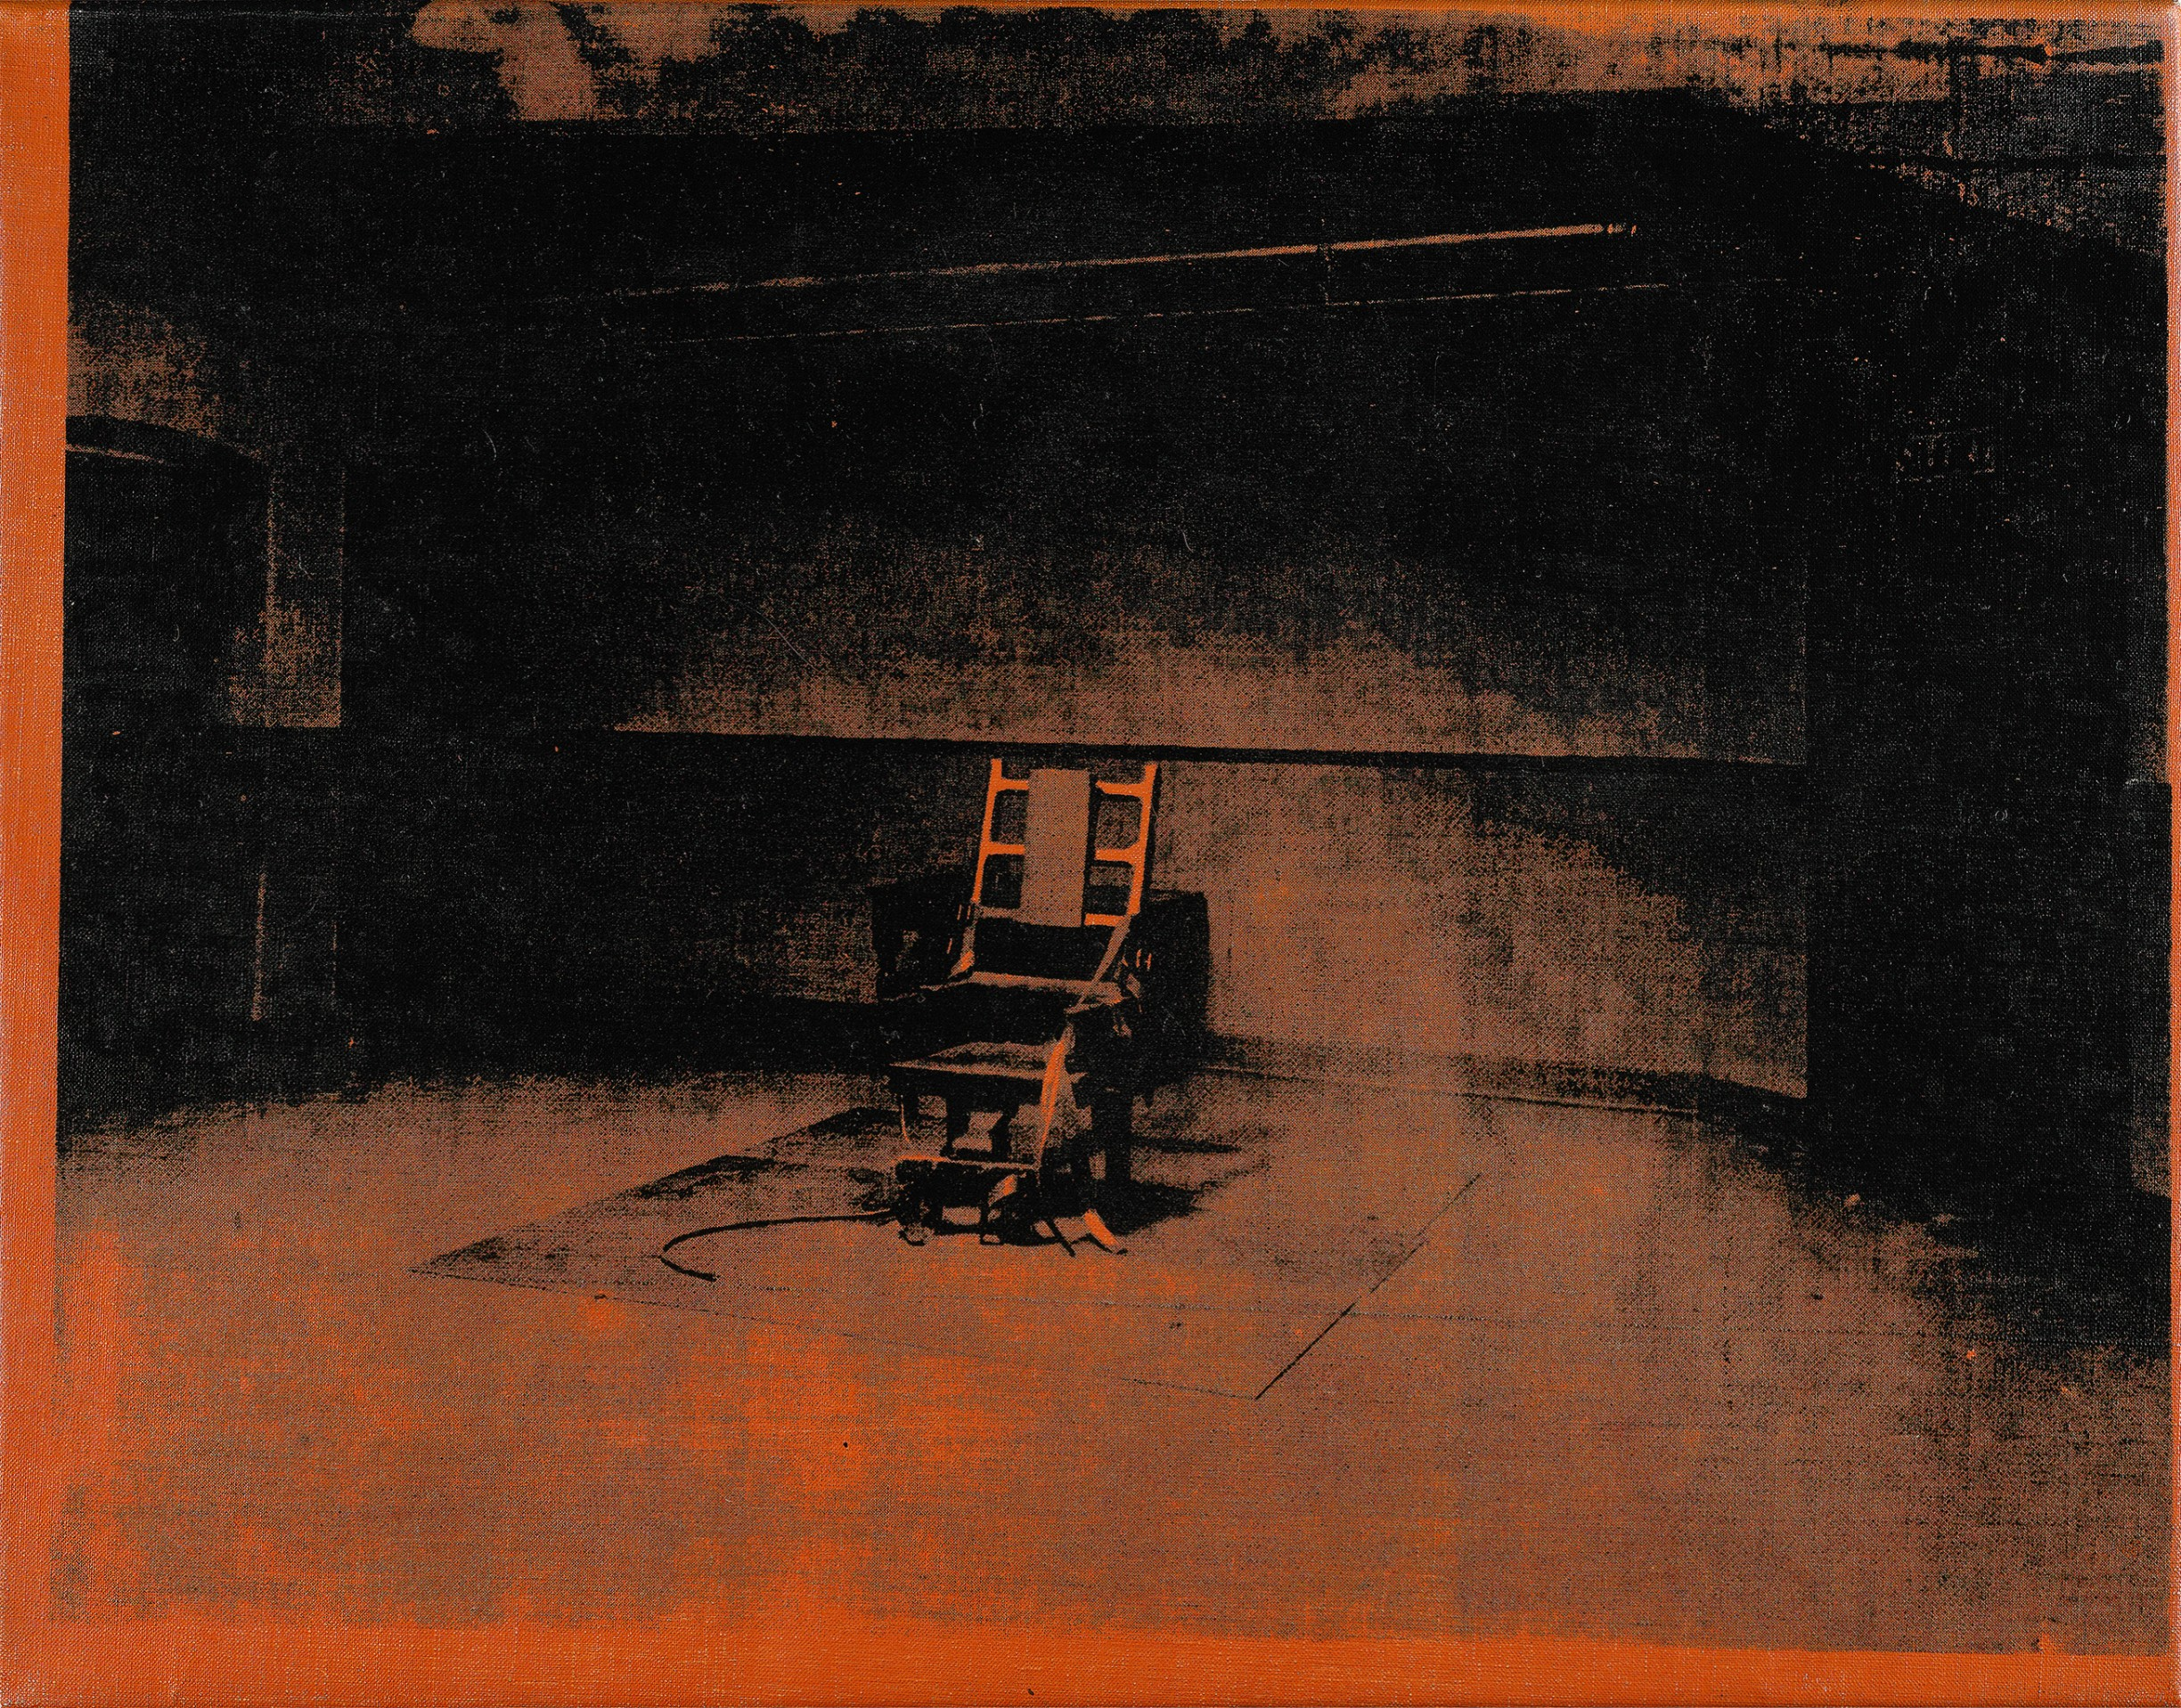 Electric chair andy warhol - Little Electric Chair 1964 1965 By Andy Warhol